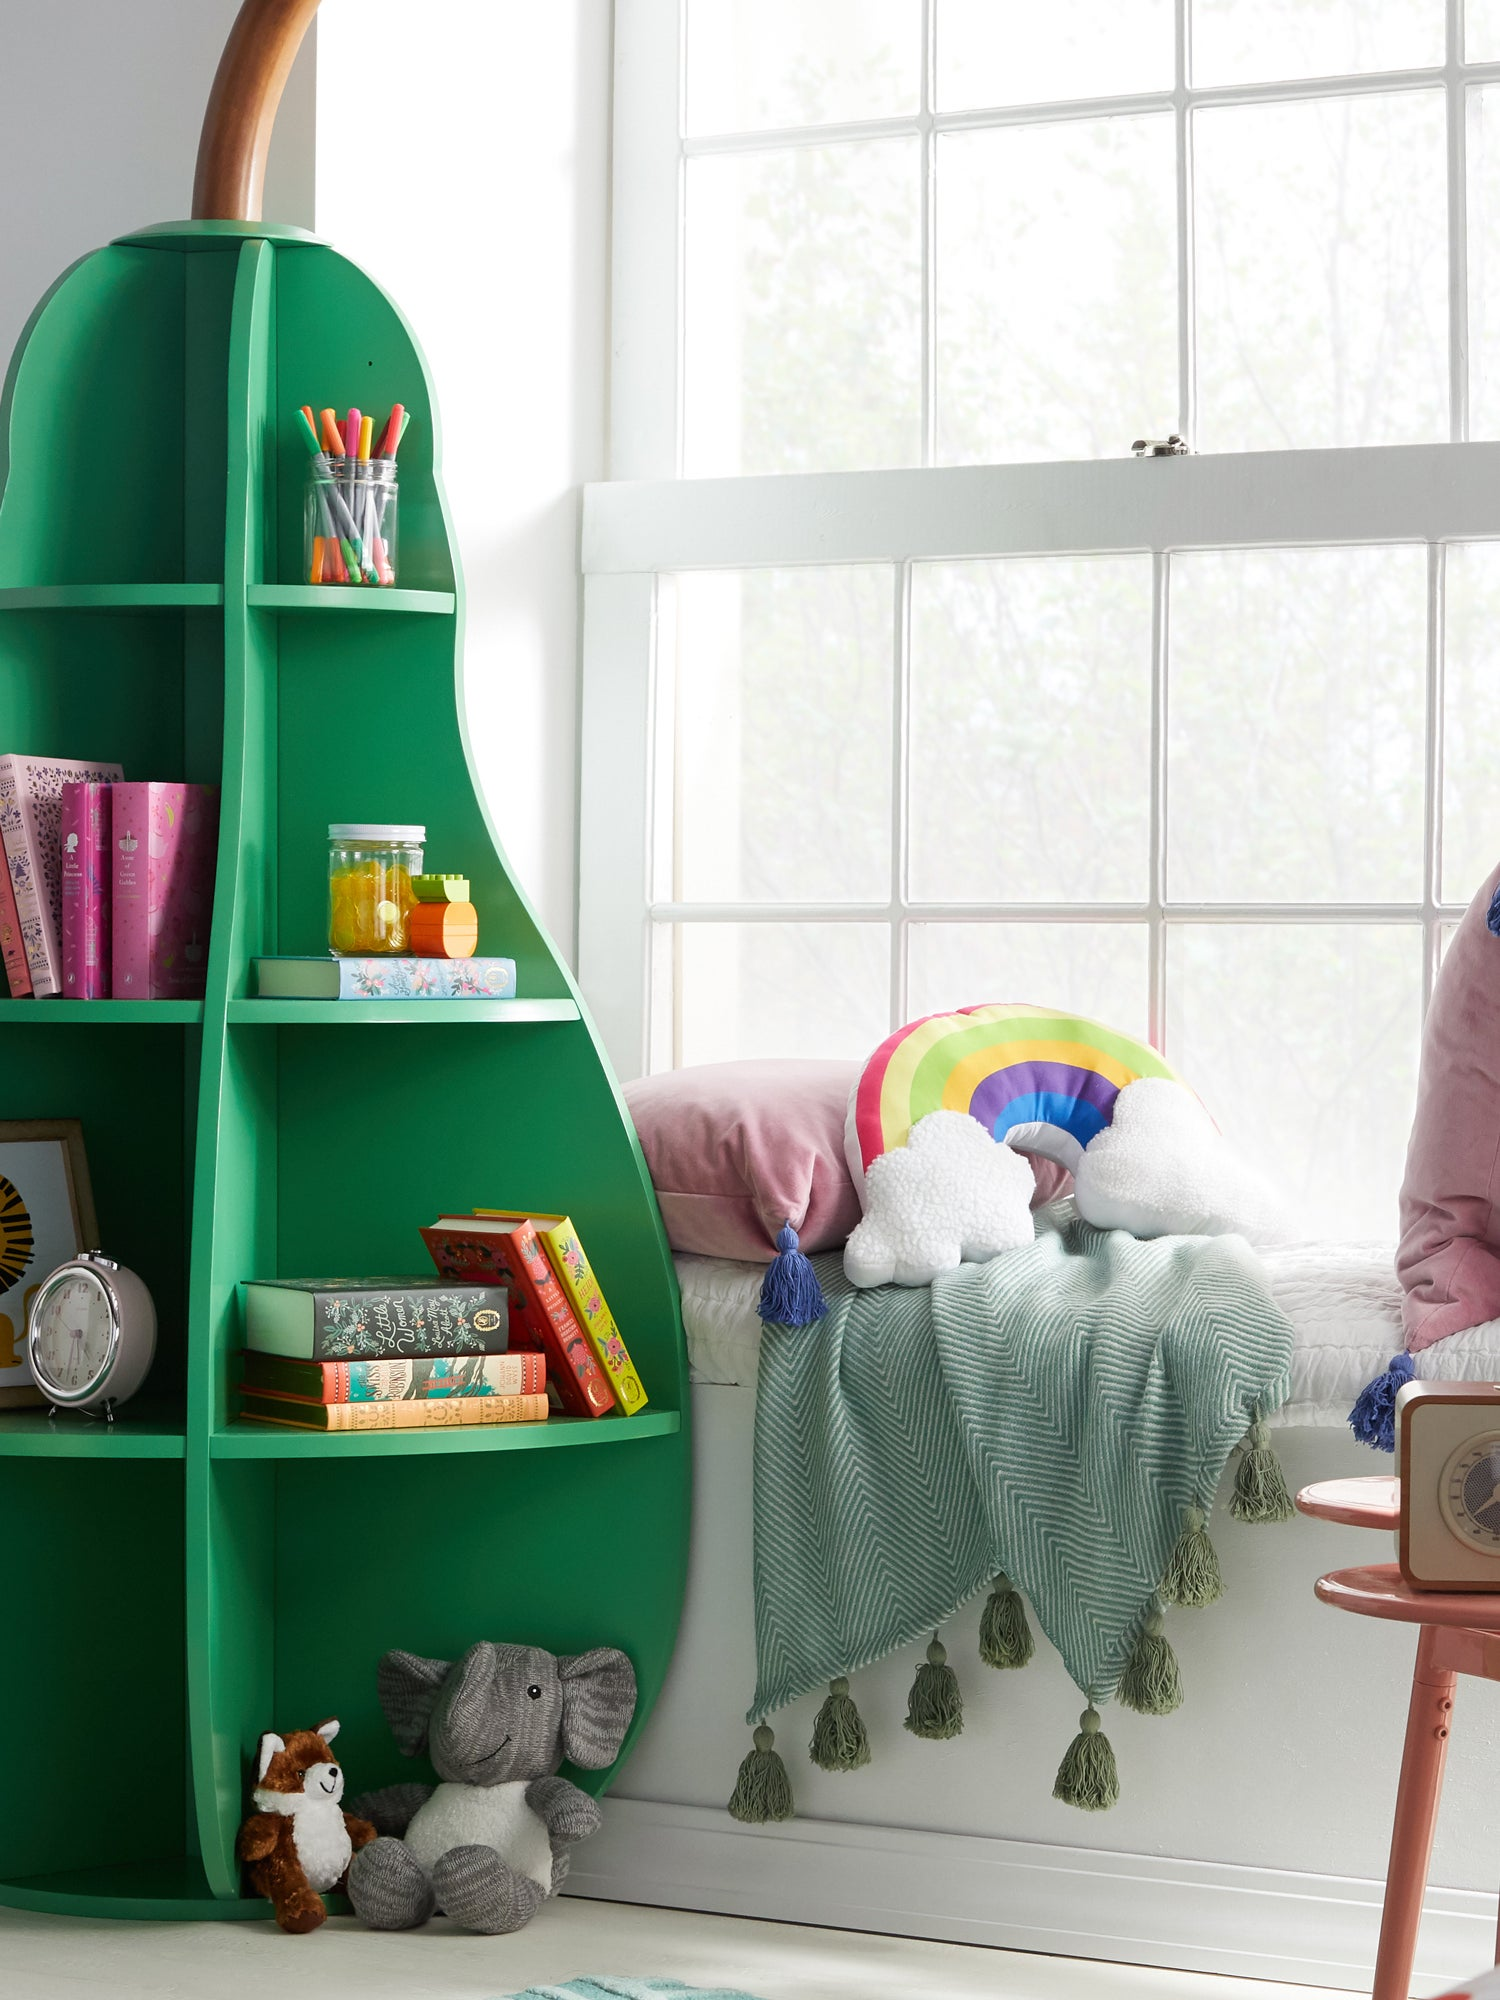 Design-Savvy Parents on the 45 Kids' Products That Make Home a Creative Escape